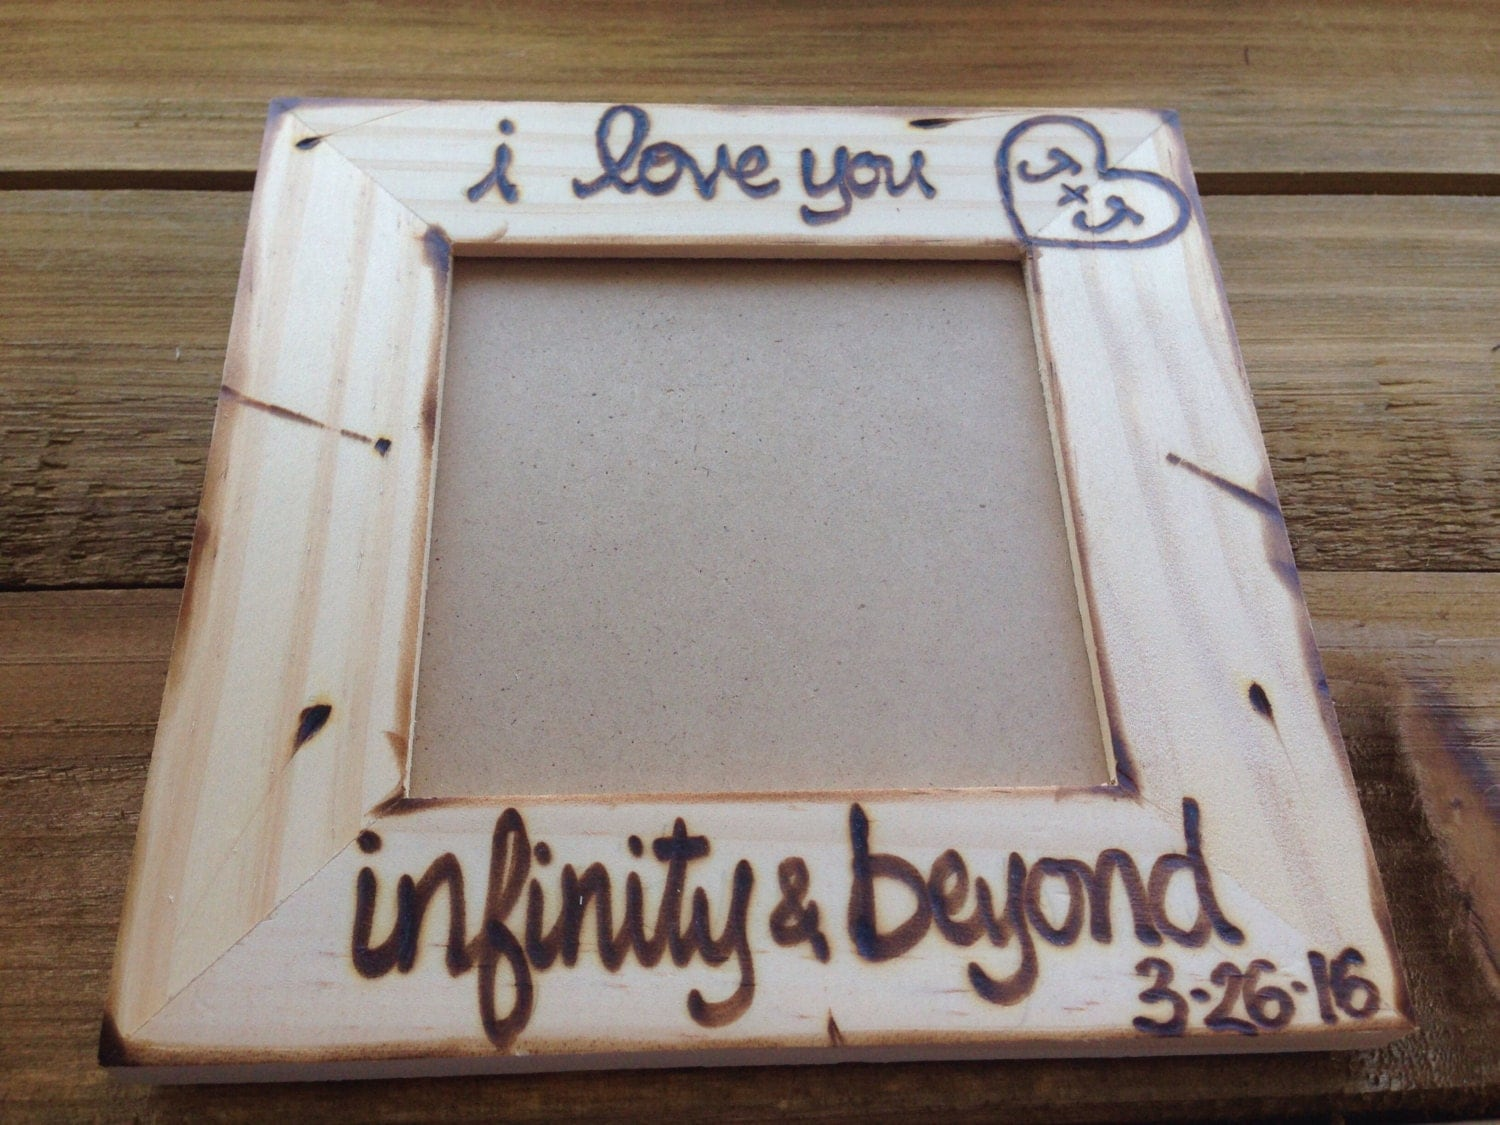 Valentines day infinity beyond frame wedding engagement 1399 jeuxipadfo Image collections